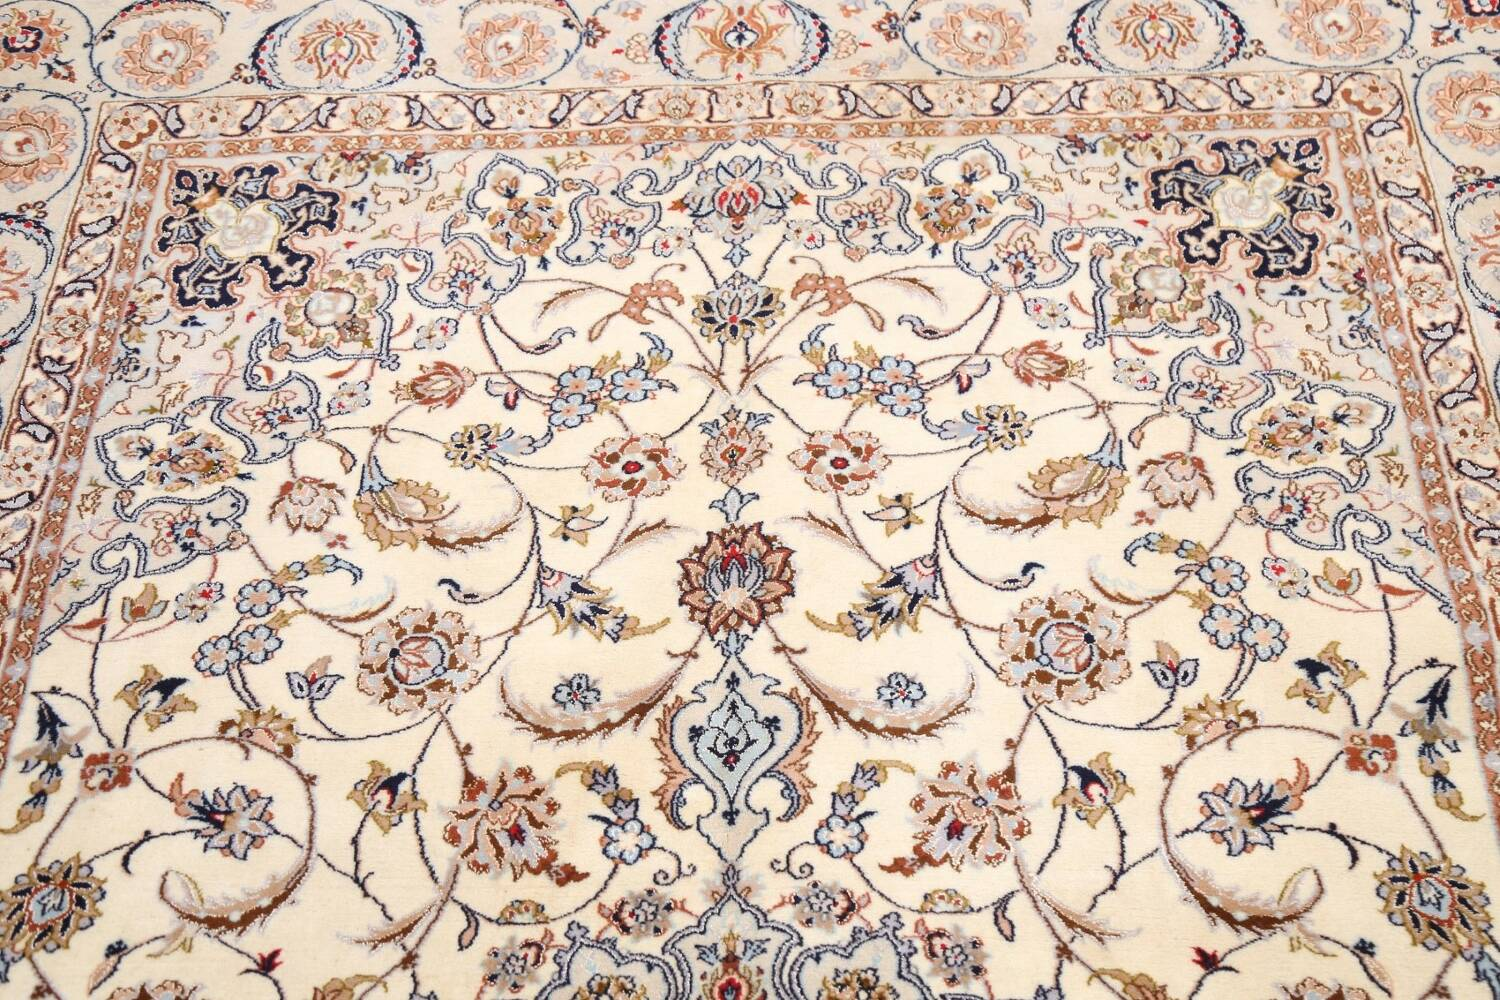 100% Vegetable Dye Floral Isfahan Persian Area Rug 5x8 image 10